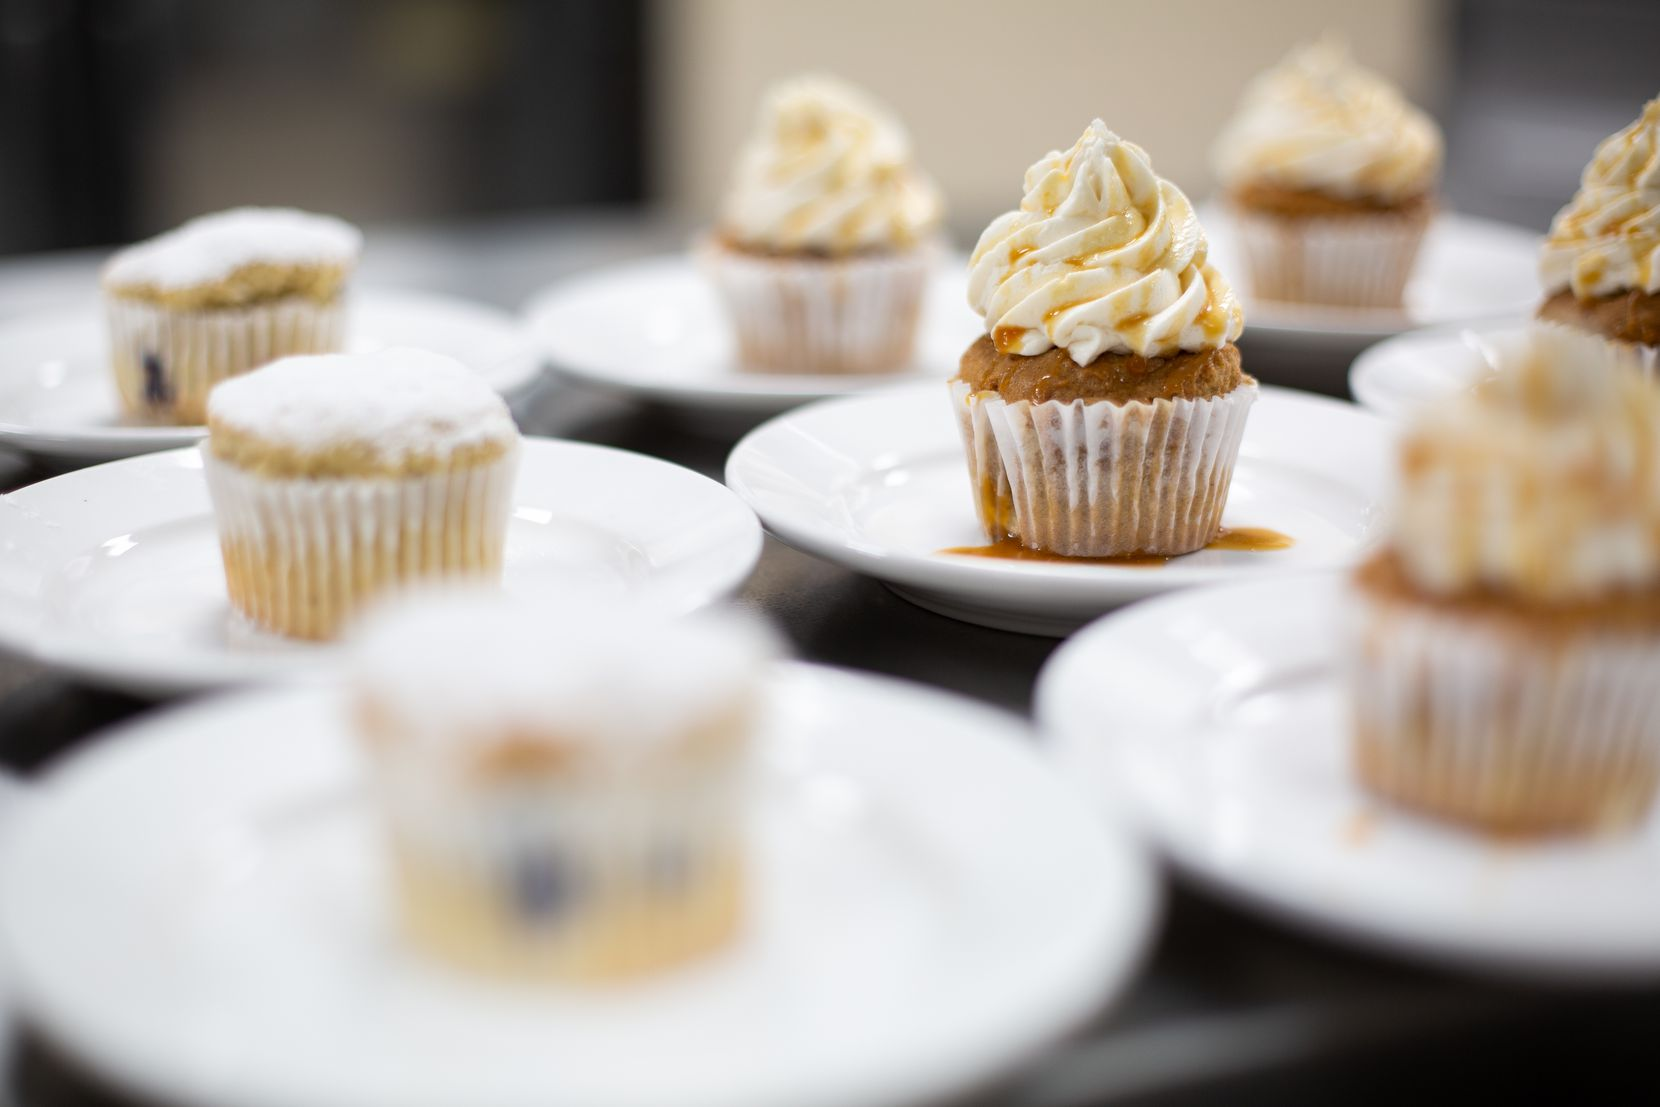 Cinnamon apple cupcakes come topped with dairy-free cream cheese frosting. We tried one: They're tasty.